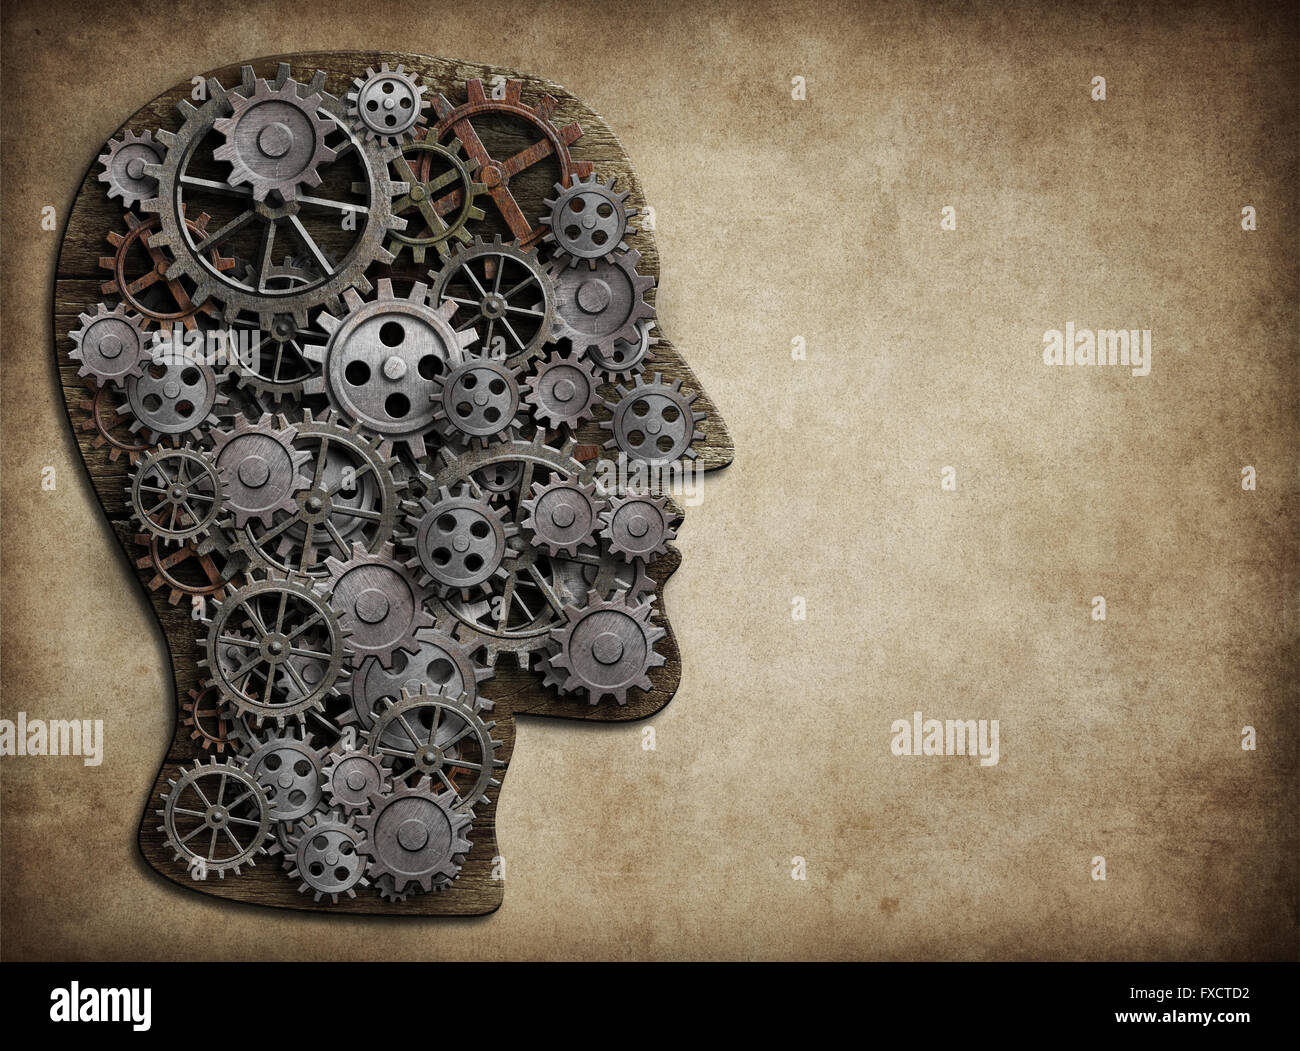 Head made from gears and cogs. Brain activity, idea concept. Stock Photo